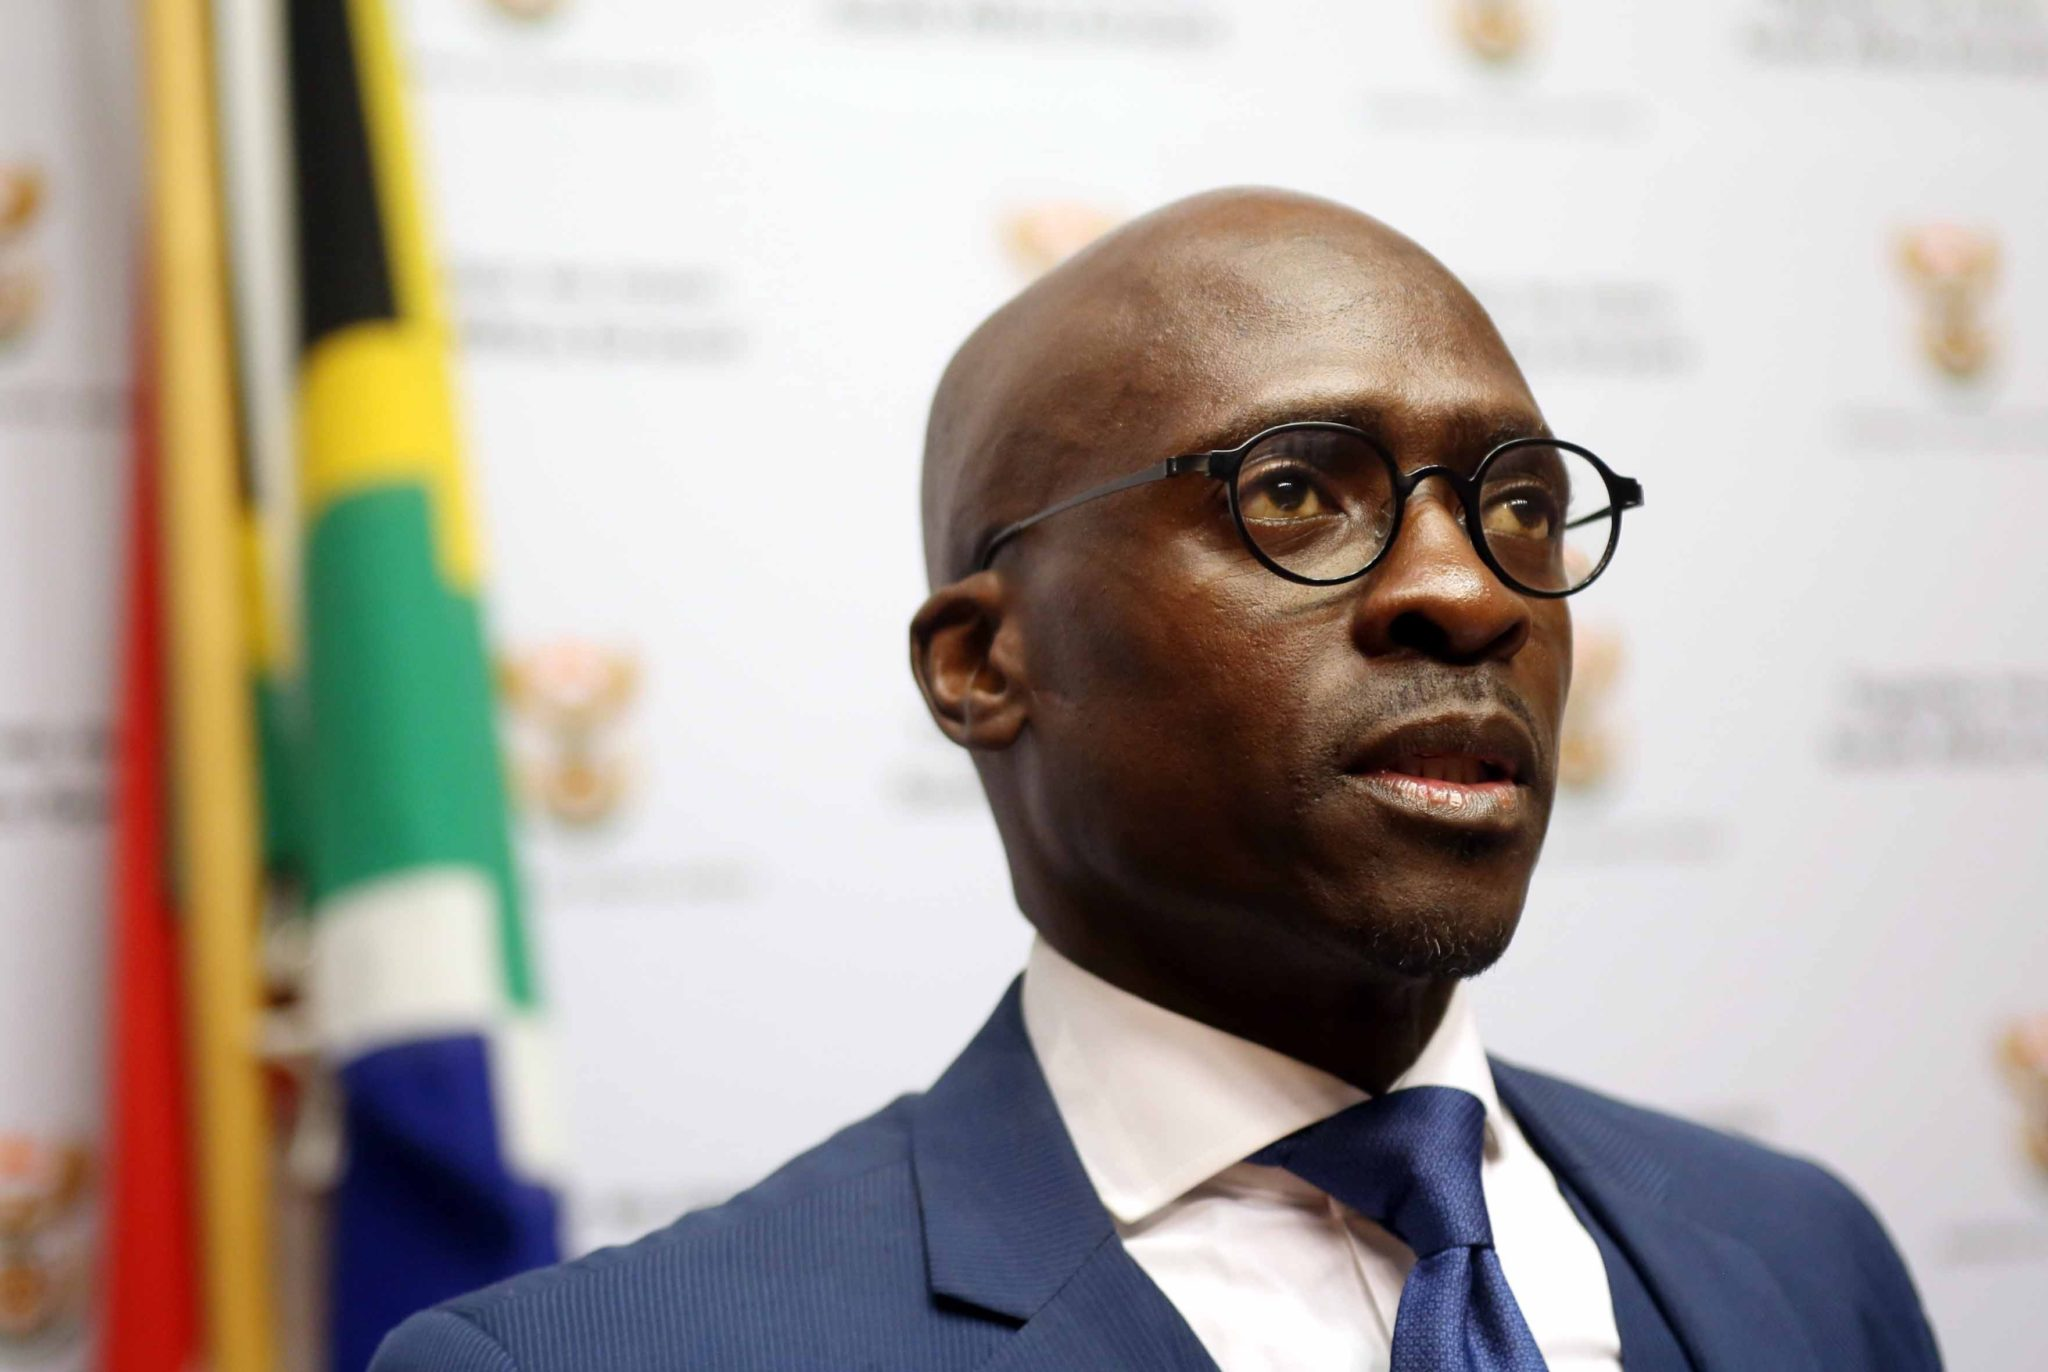 Treasury reports once again find Malusi Gigaba at the heart of State Capture